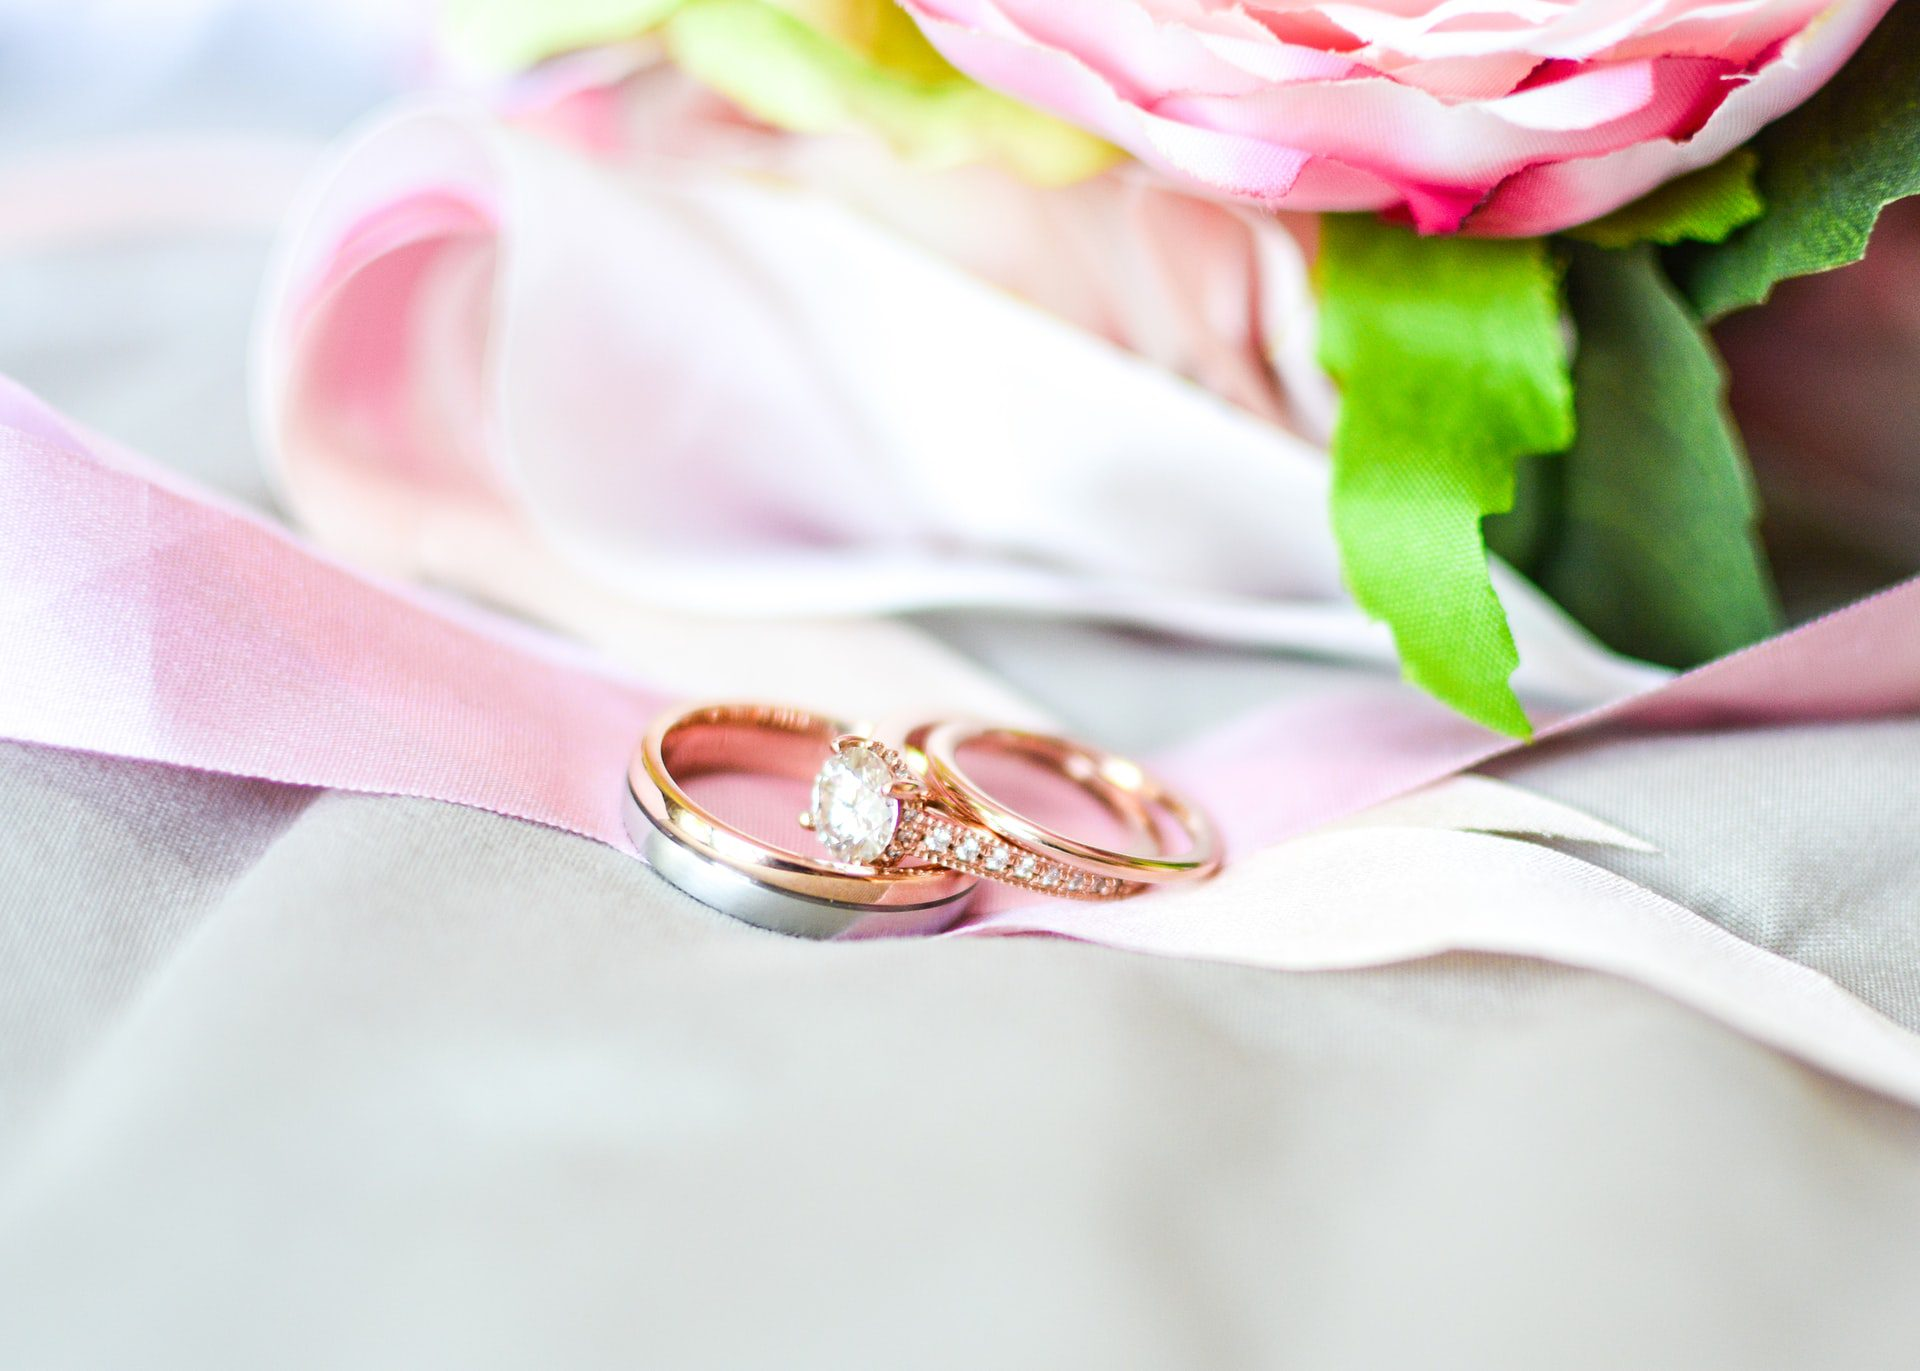 What Is So Special About Moissanite Engagement Rings?